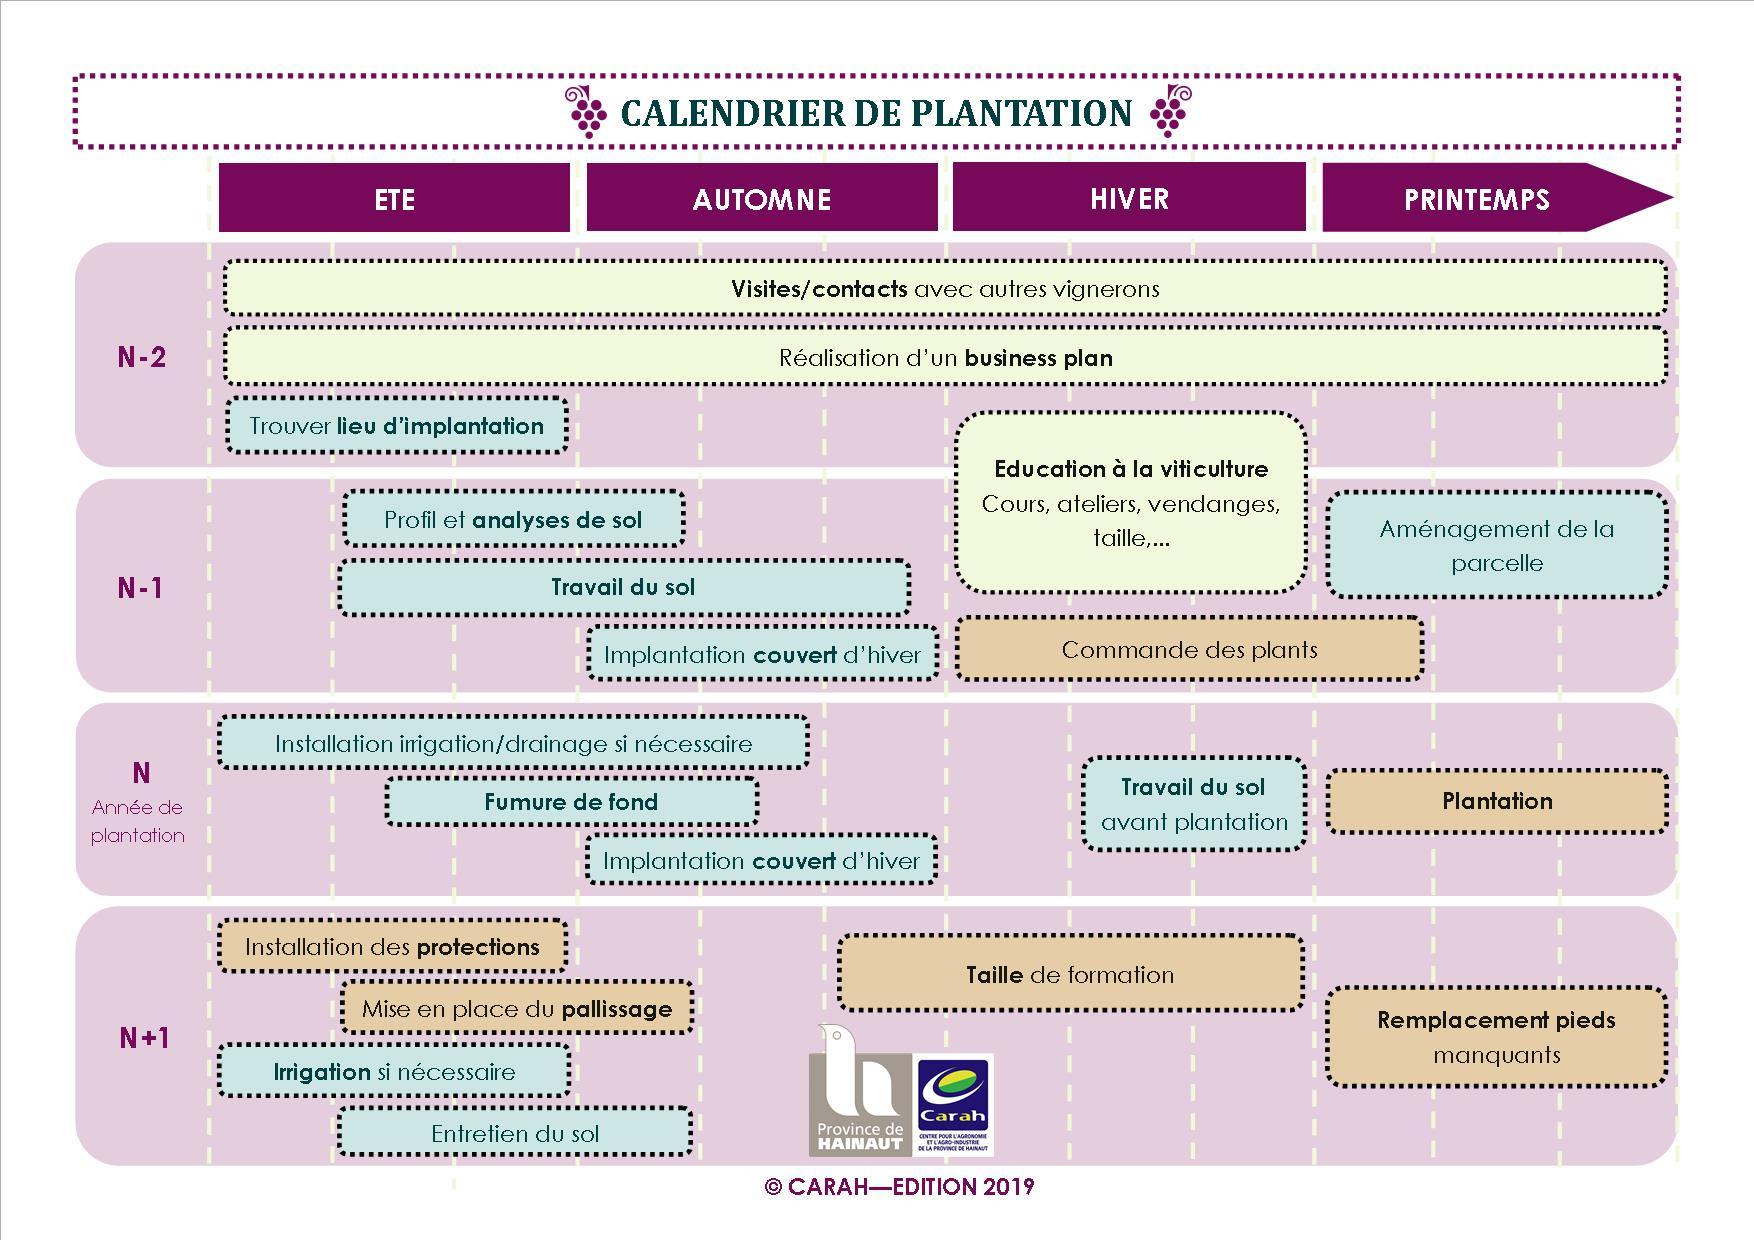 Calendrier plantation 2019 Copie